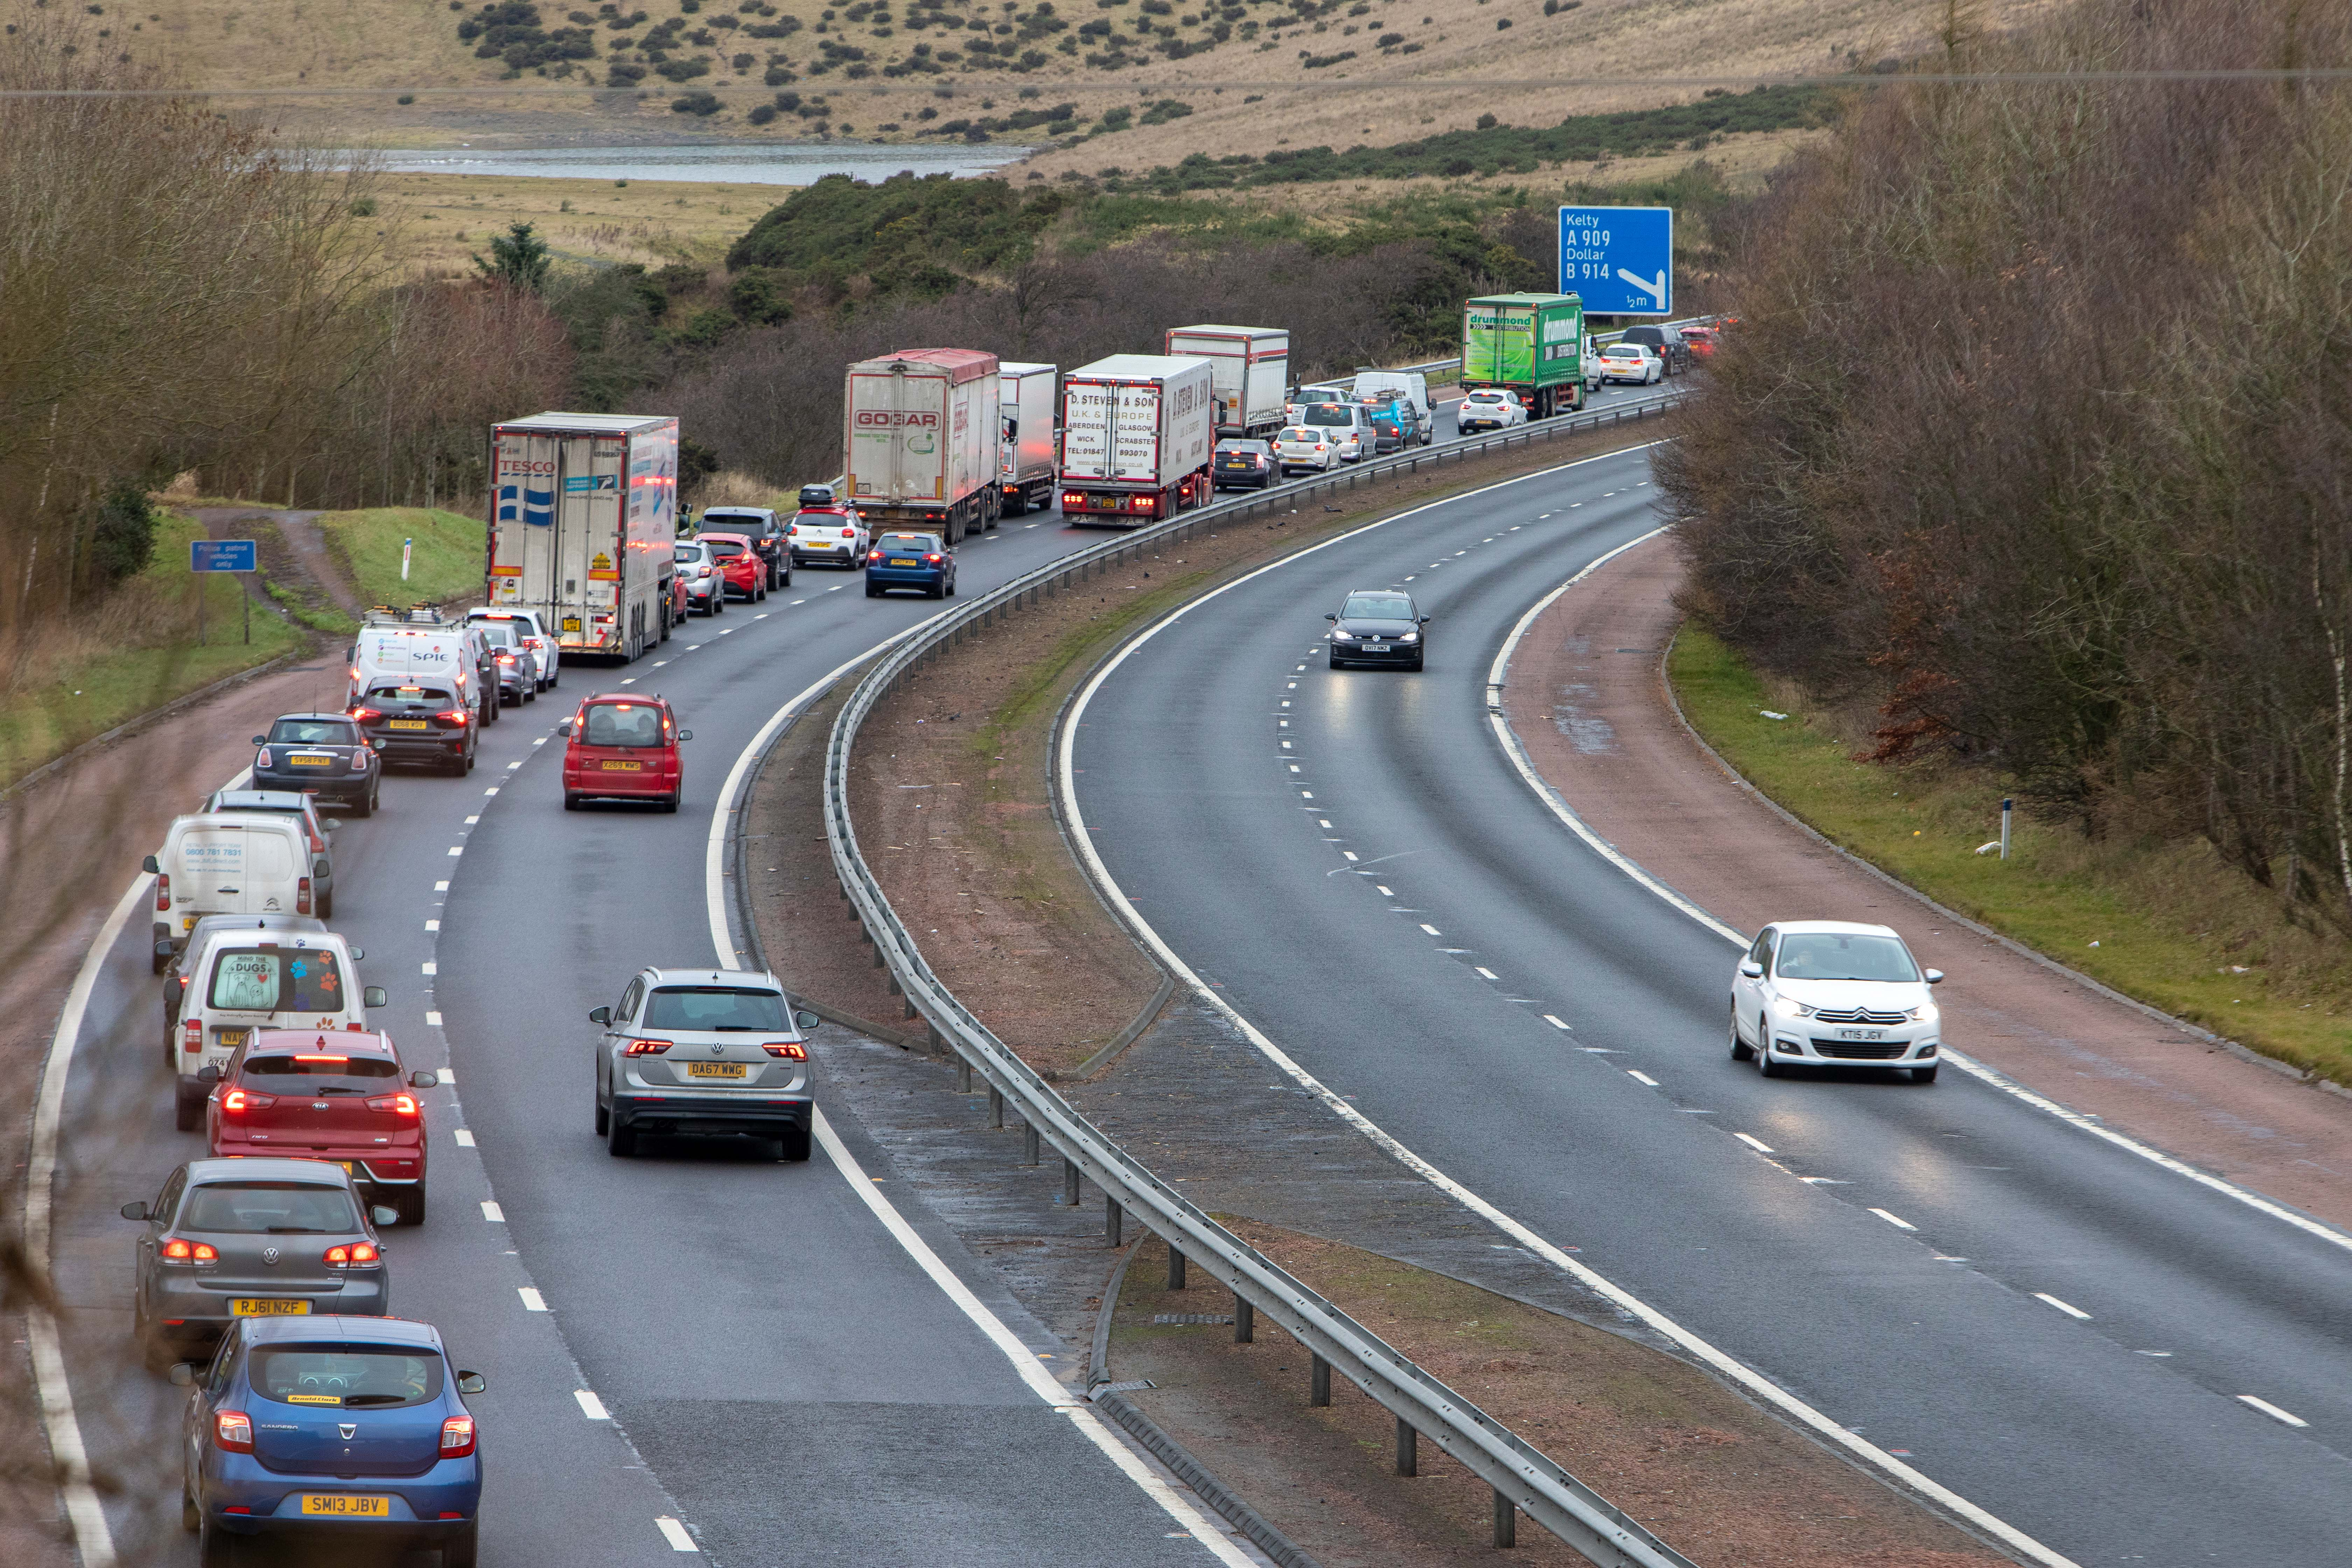 The incident happened just before the Kelty junction of the M90